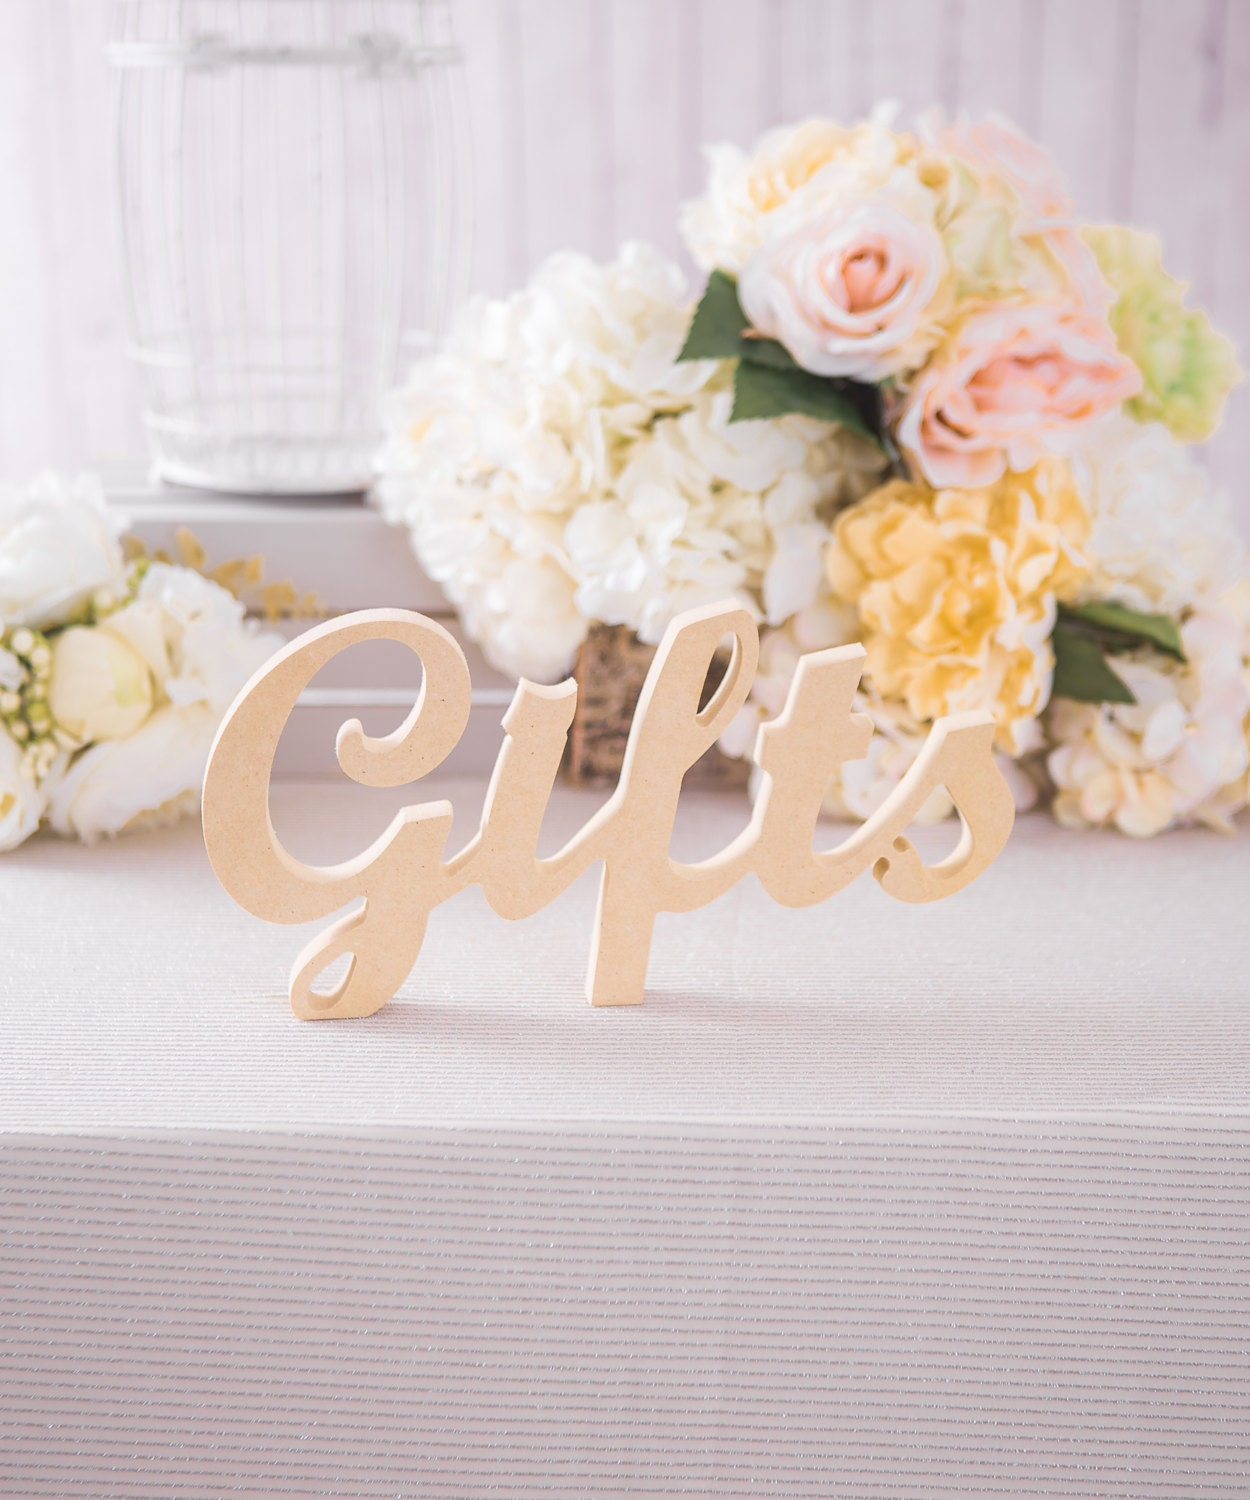 Wedding Gift Table : Wedding Gift Table Sign for Wedding Gifts Table or Card Table